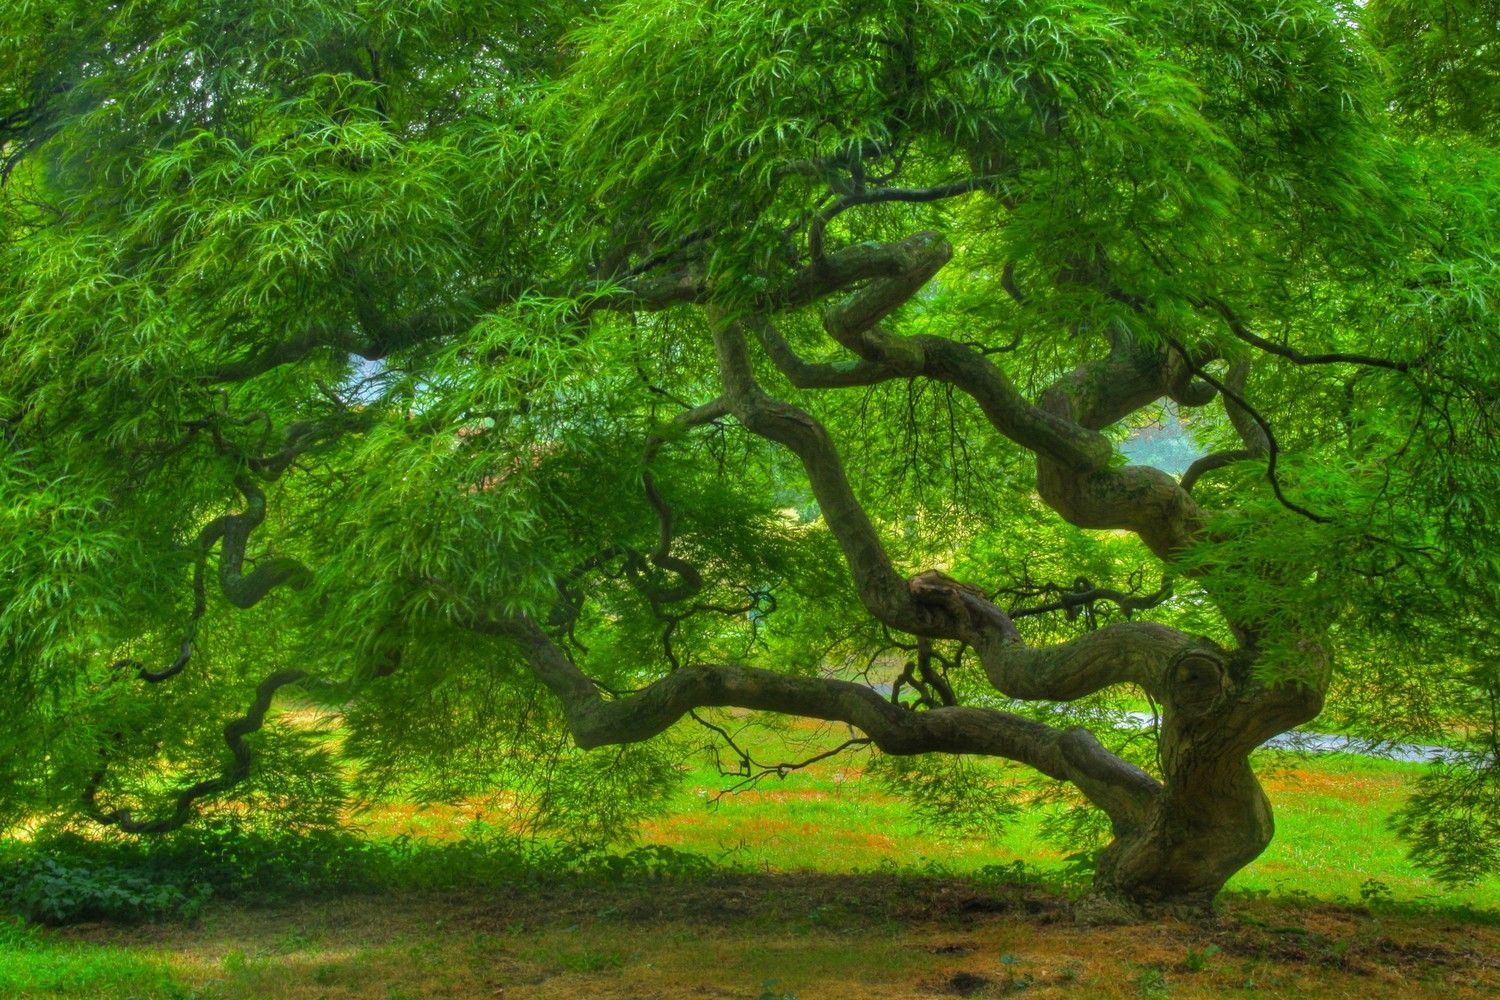 Japanese Maple Tree in Summer, Landscape Photograph, Nature, Tree of ...